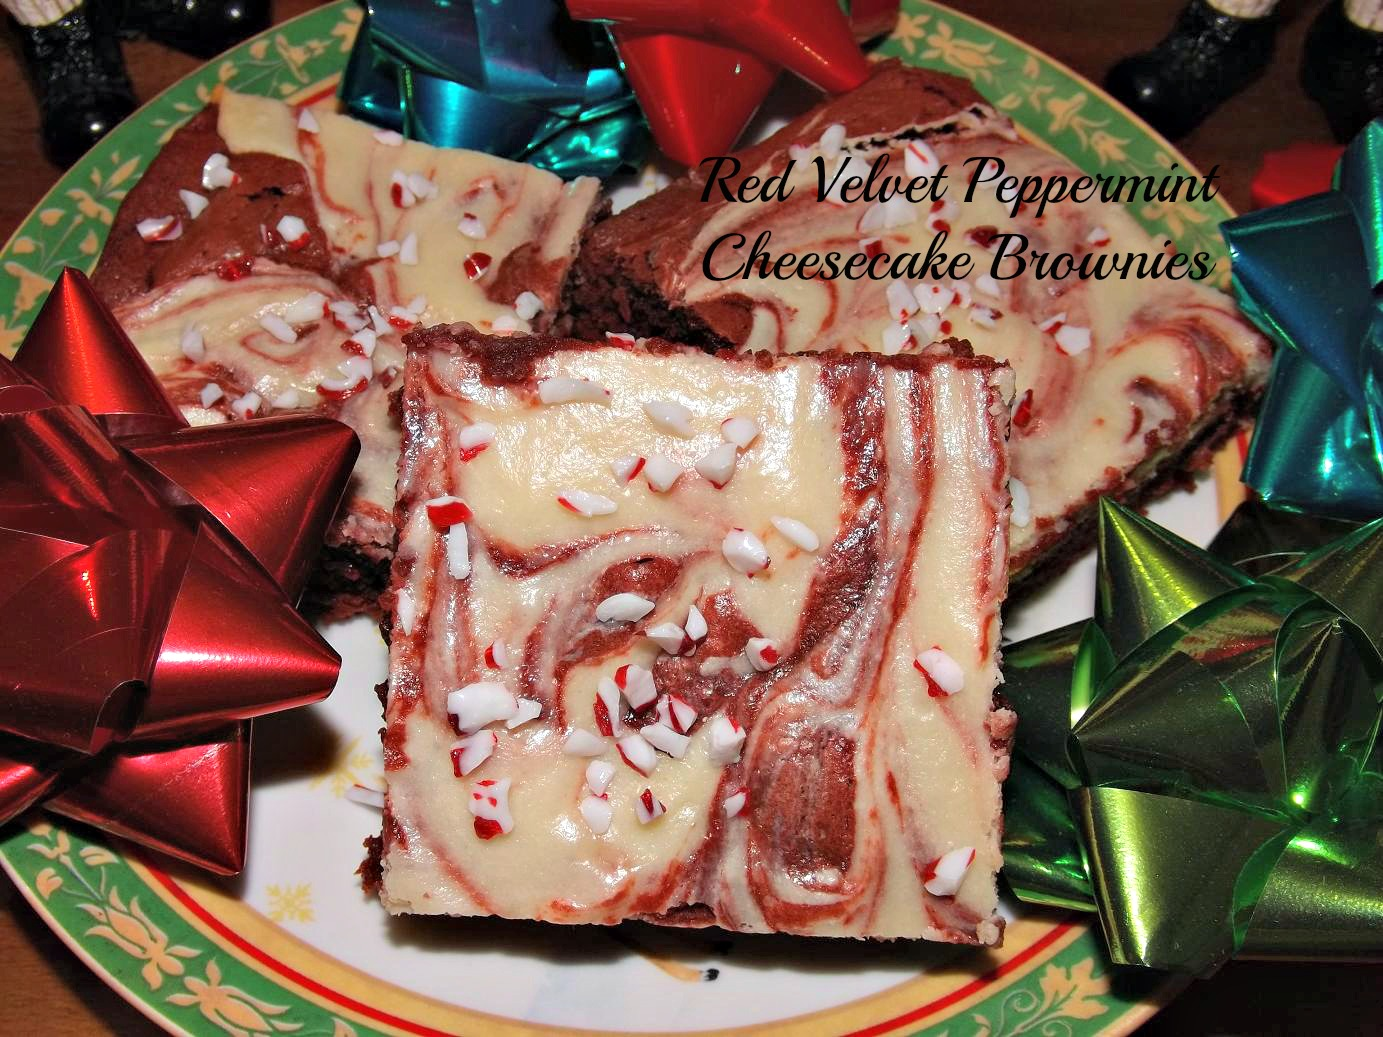 Red Velvet Peppermint Cheesecake Brownies